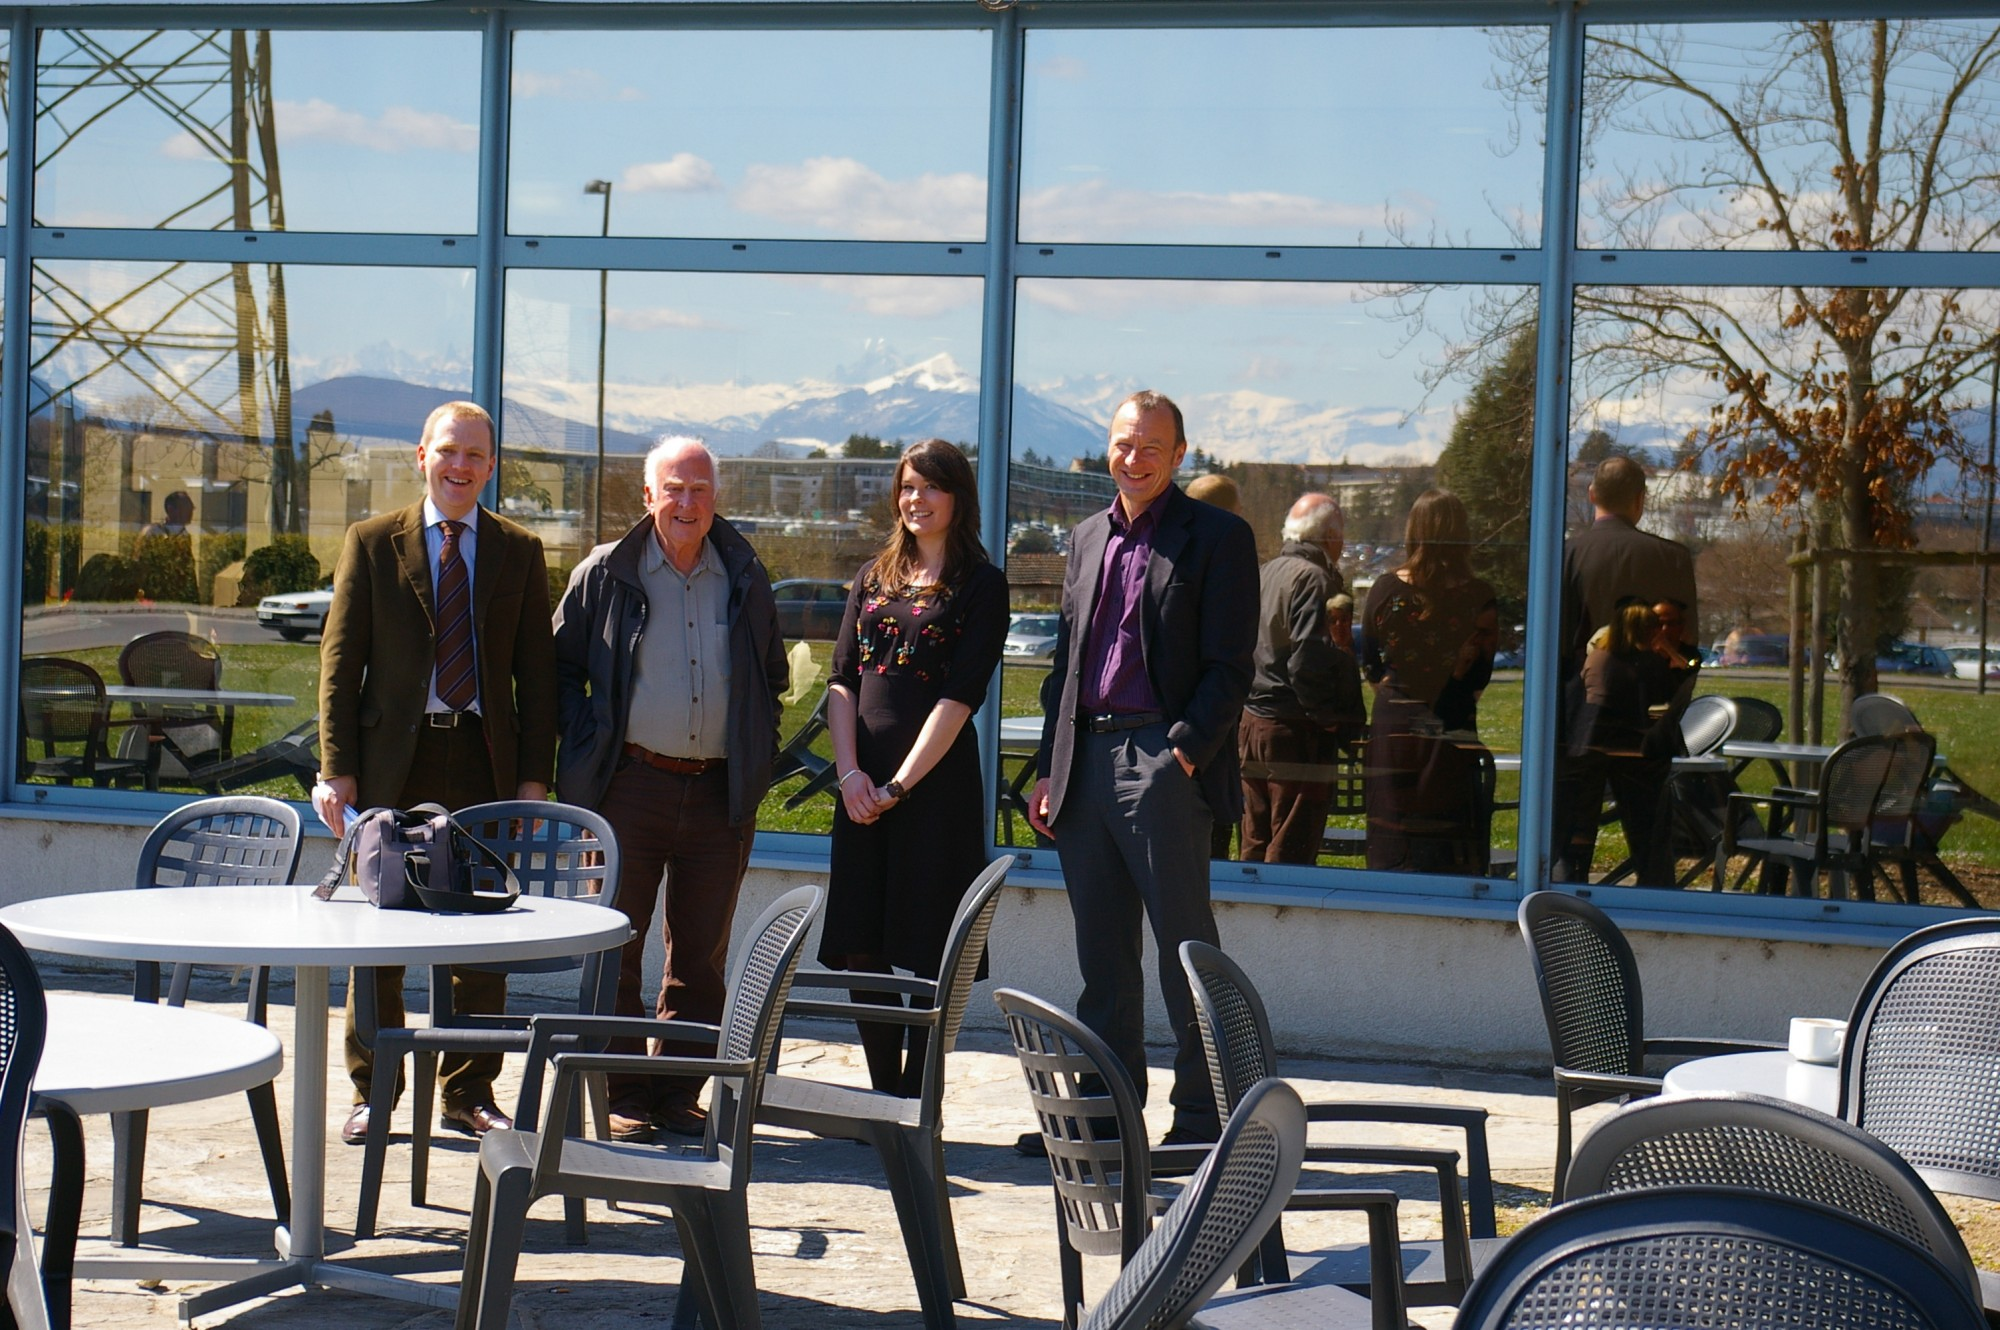 Left to right: Ronnie Kerr, Peter Higgs, Jessica Griggs and Richard Kenway relaxing at CERN Restaurant 1 after the conclusion to the visit. Photograph copyright Alan Walker, University of Edinburgh.